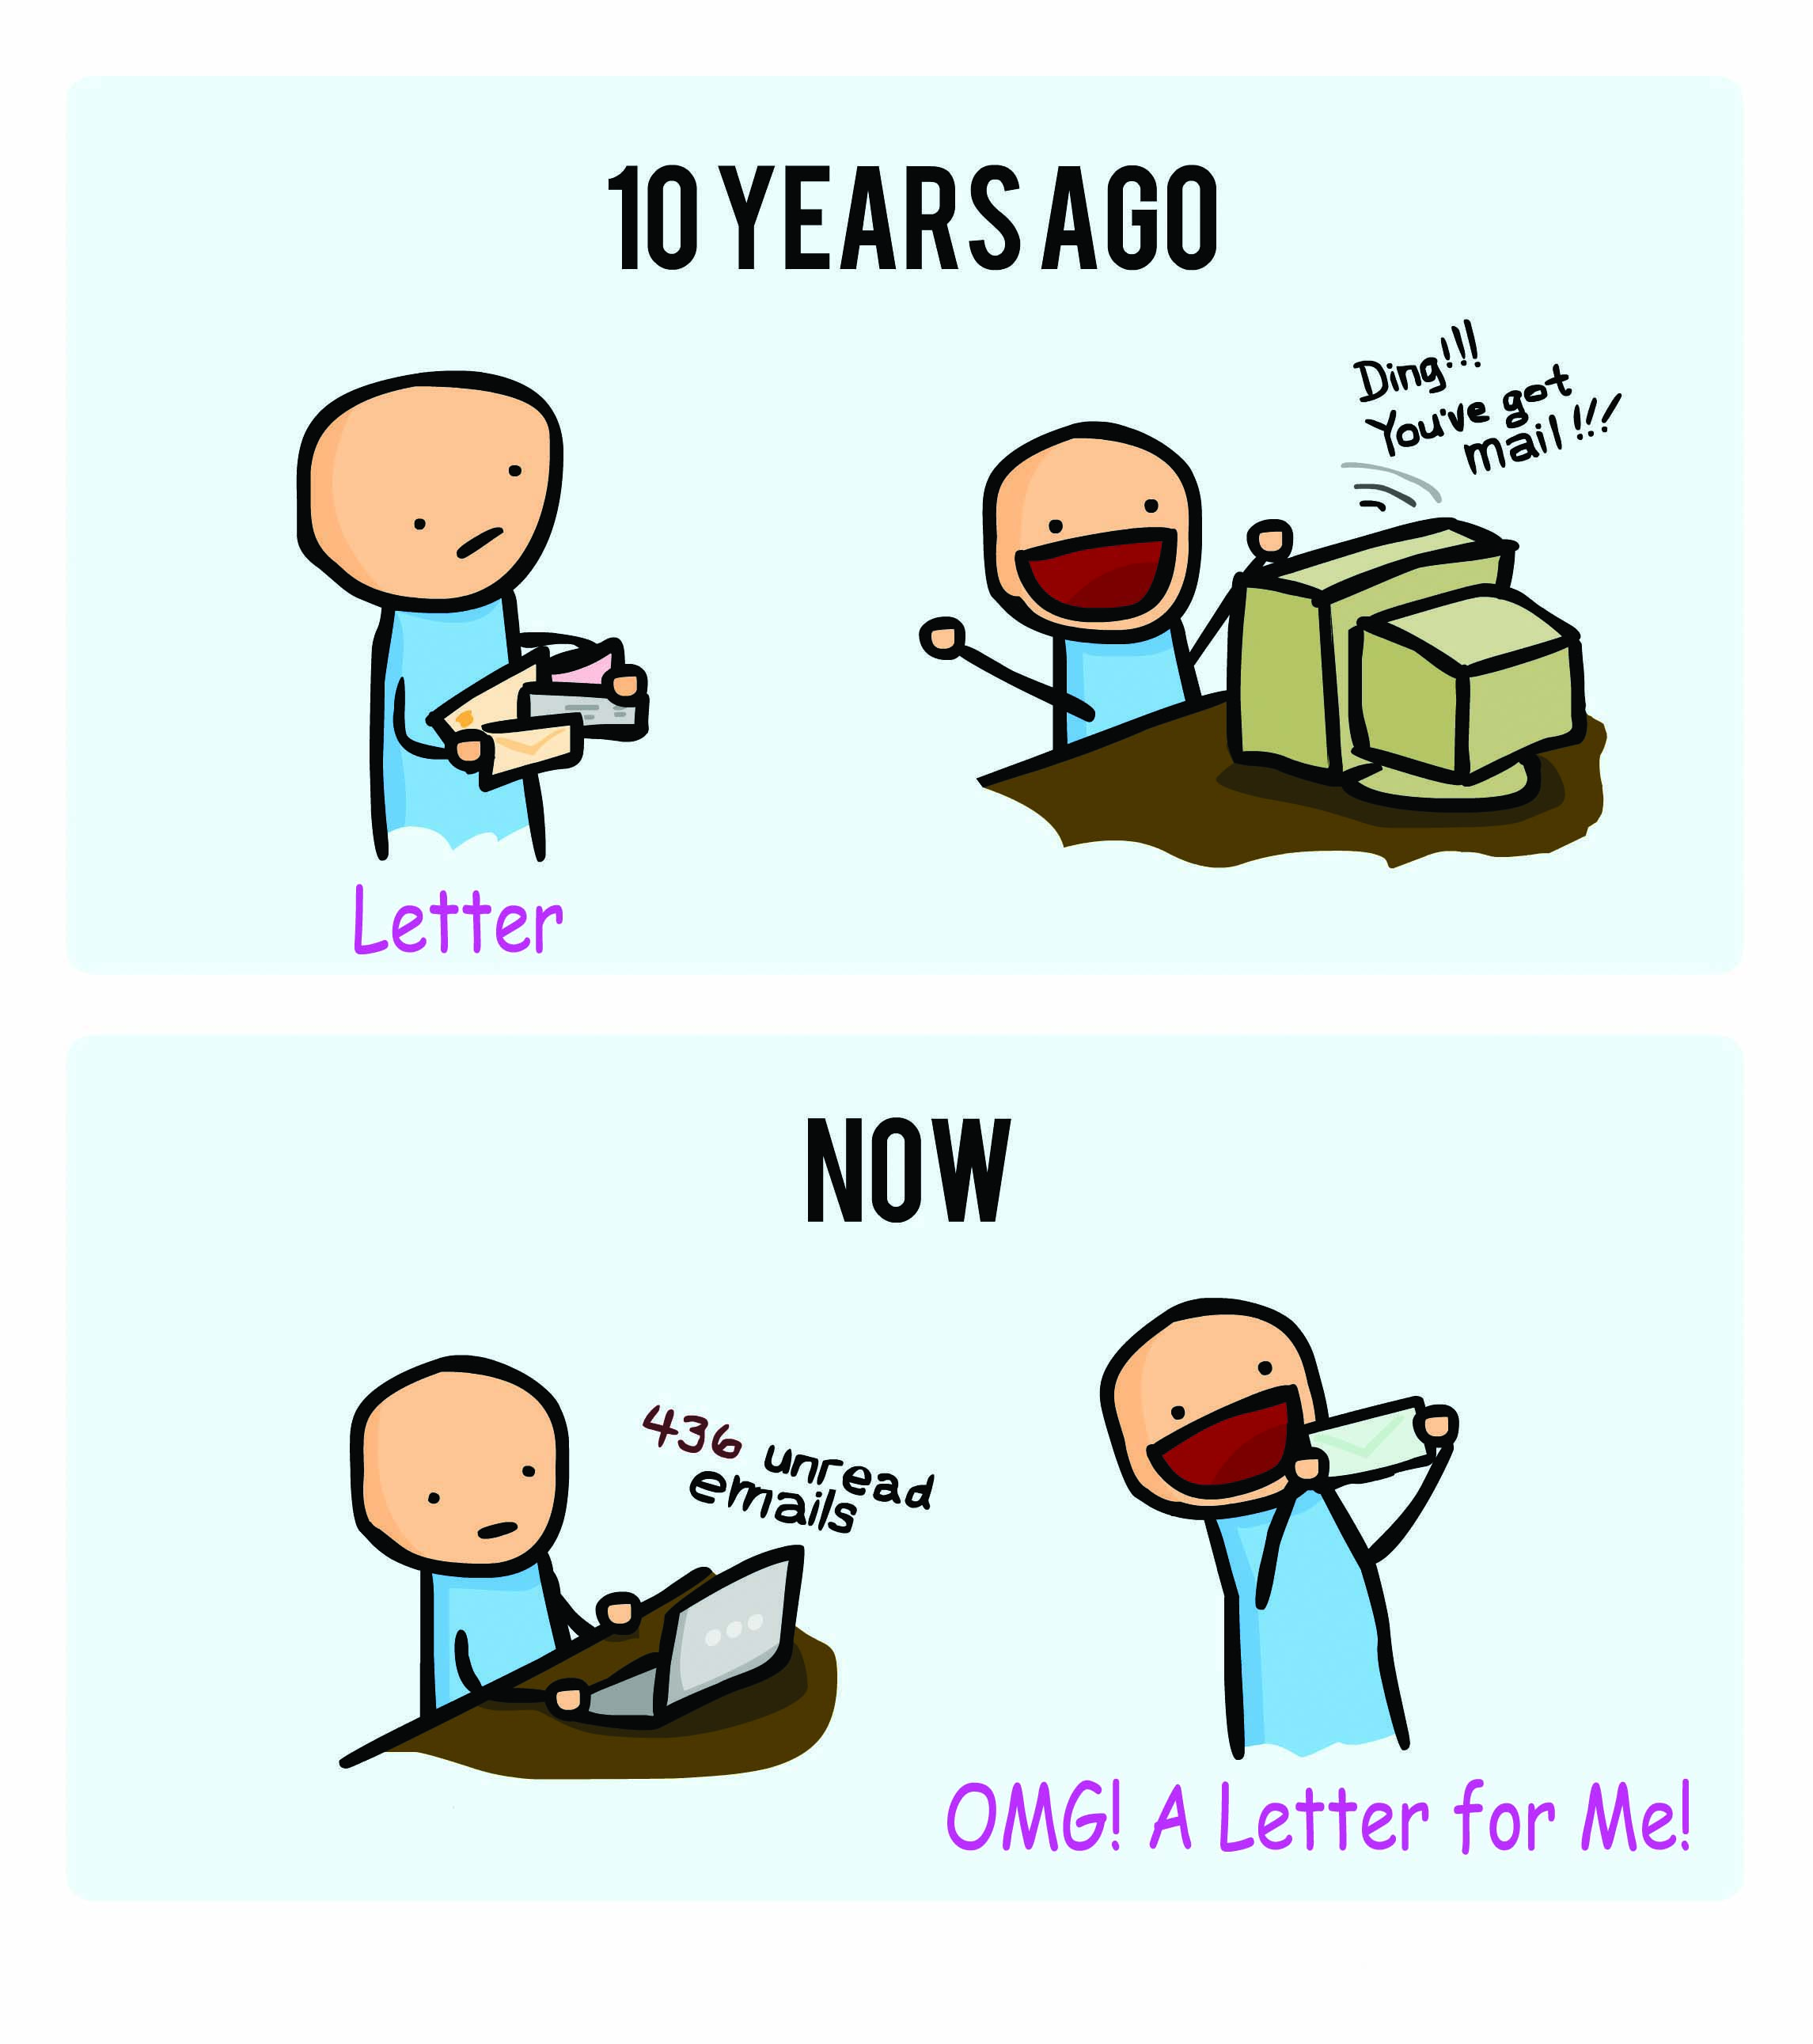 stamp collecting - letter vs email